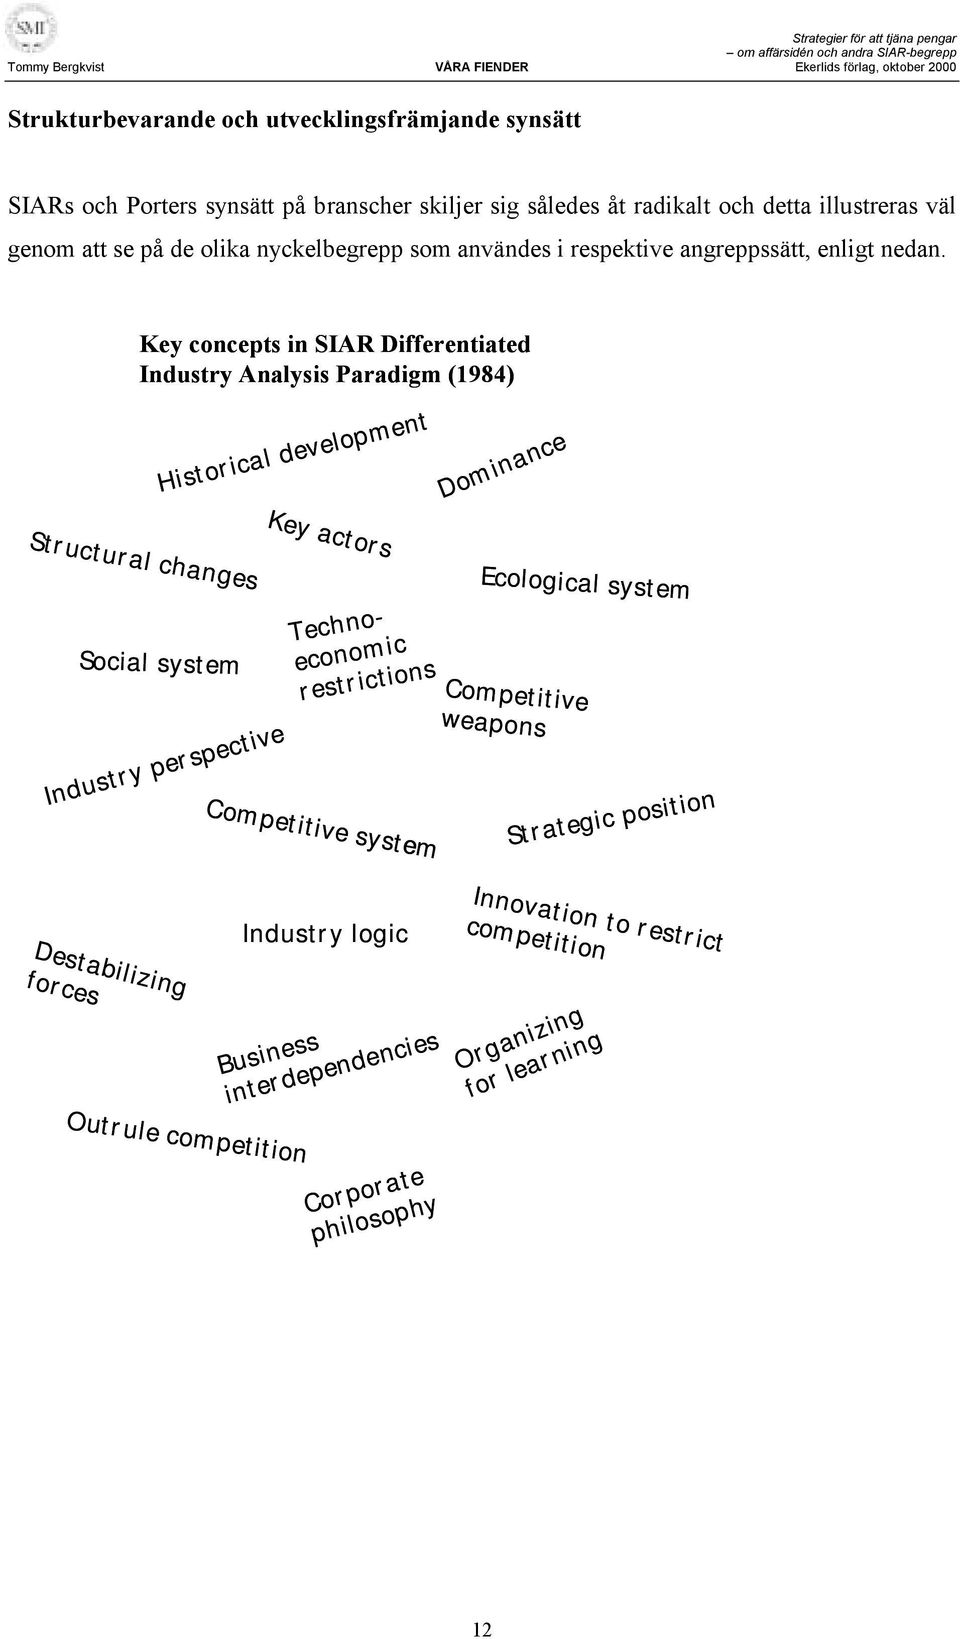 Key concepts in SIAR Differentiated Industry Analysis Paradigm (1984) Historical development Dominance Key actors Structural changes Social system Industry perspective